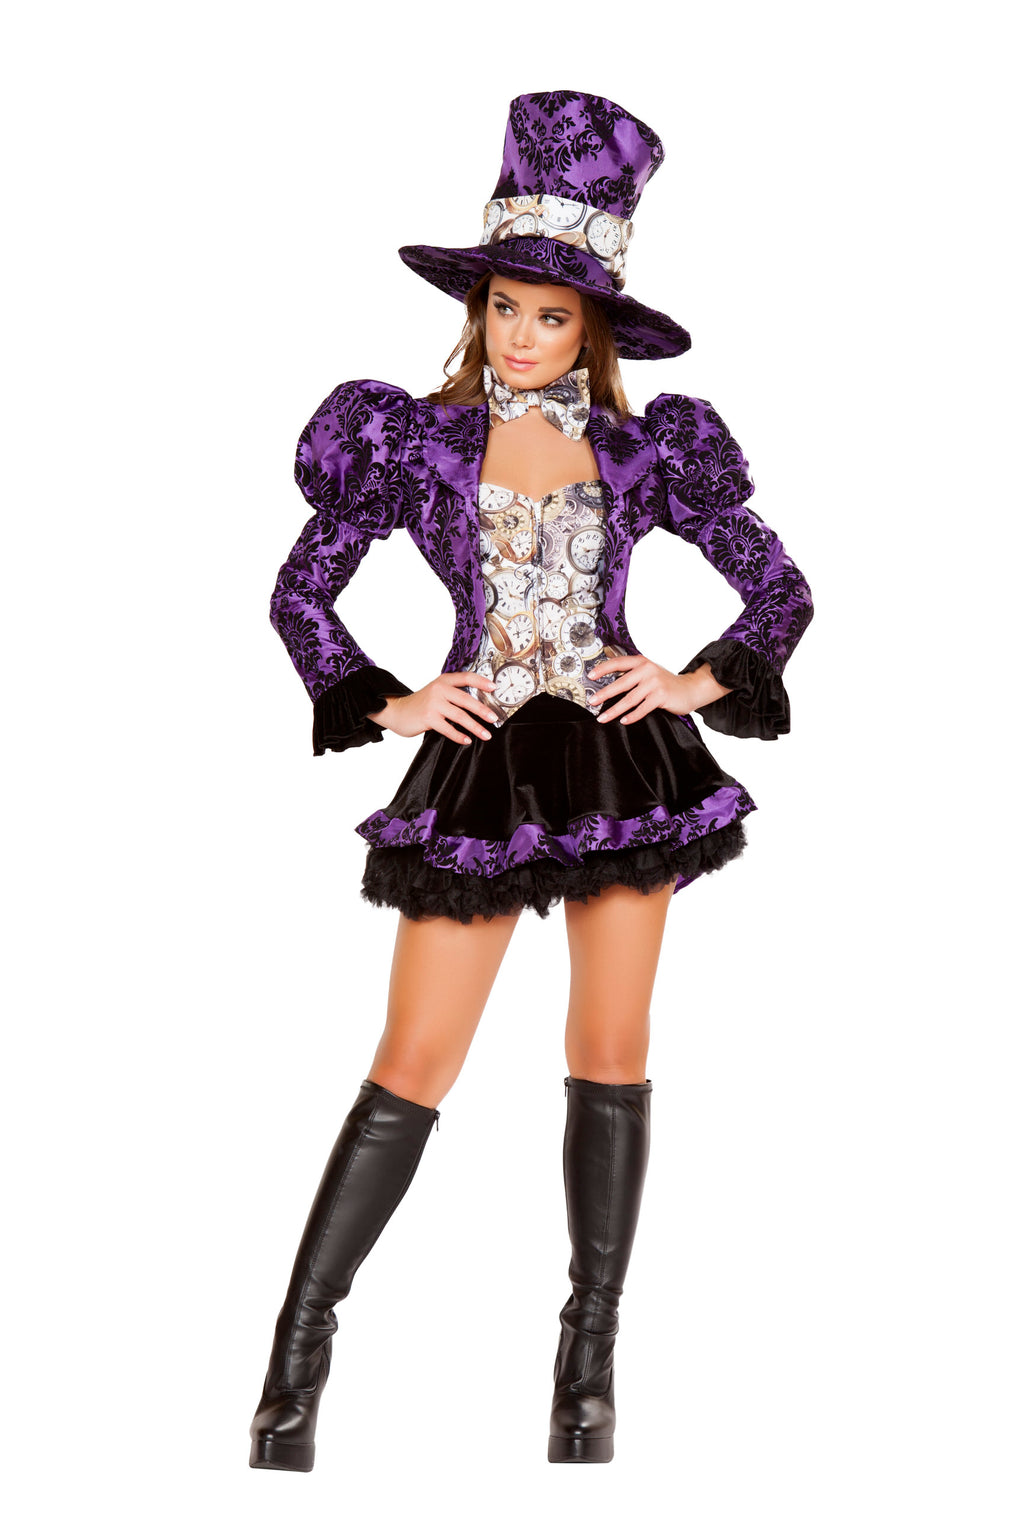 4-Piece-Mad-Tea-Partier-Jacket-&-Skirt-w/-Accessories-Party-Costume-